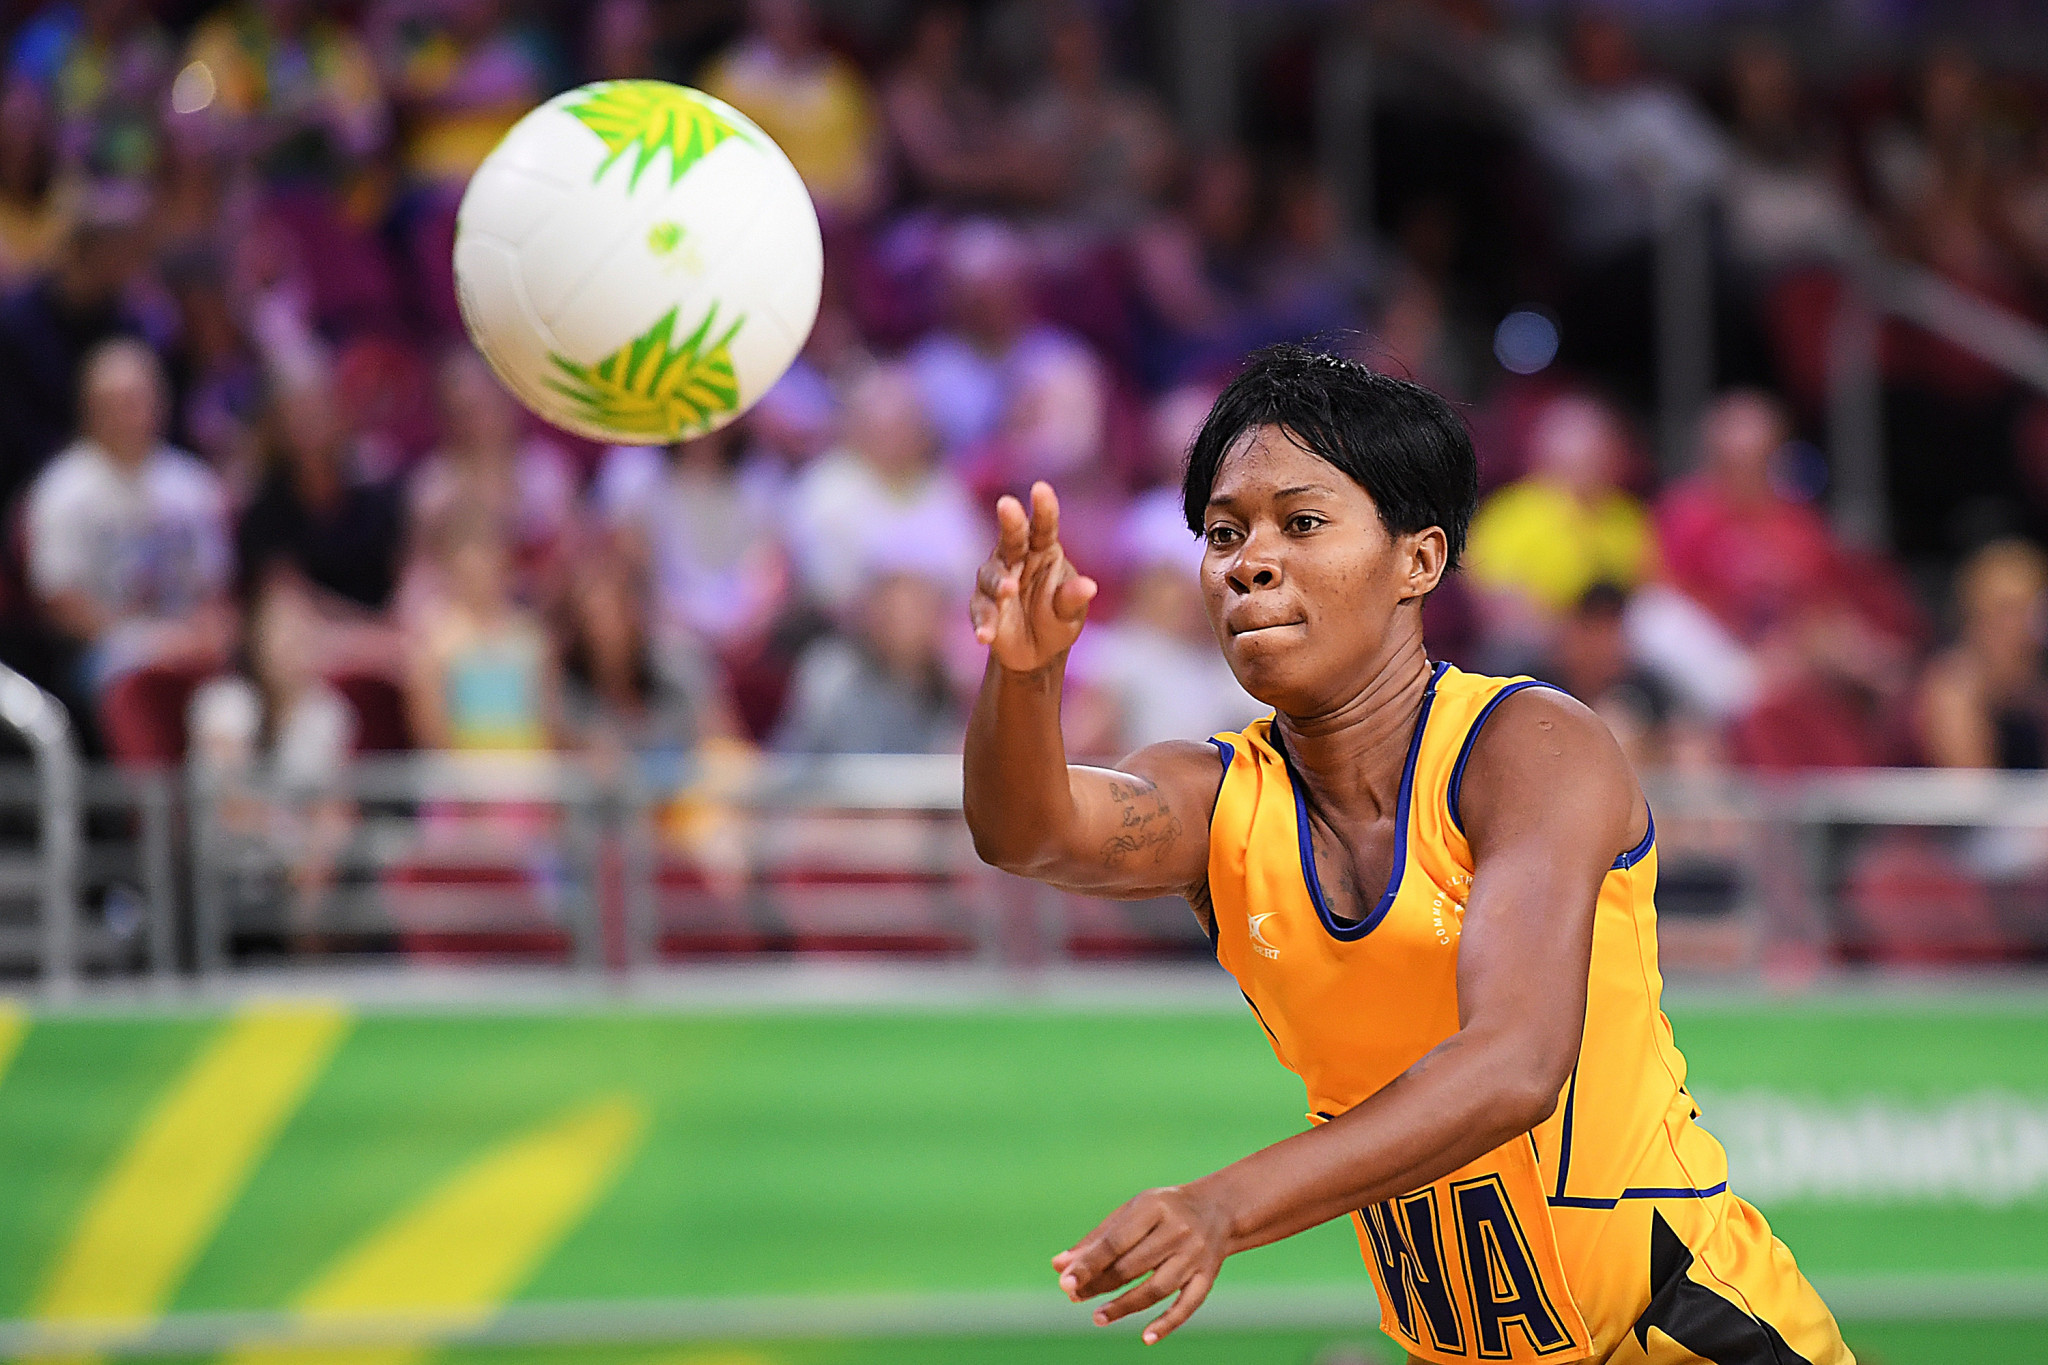 Barbados are hoping their netball team will qualify for Birmingham 2022 but COVID-19 has hindered preparations ©Getty Images